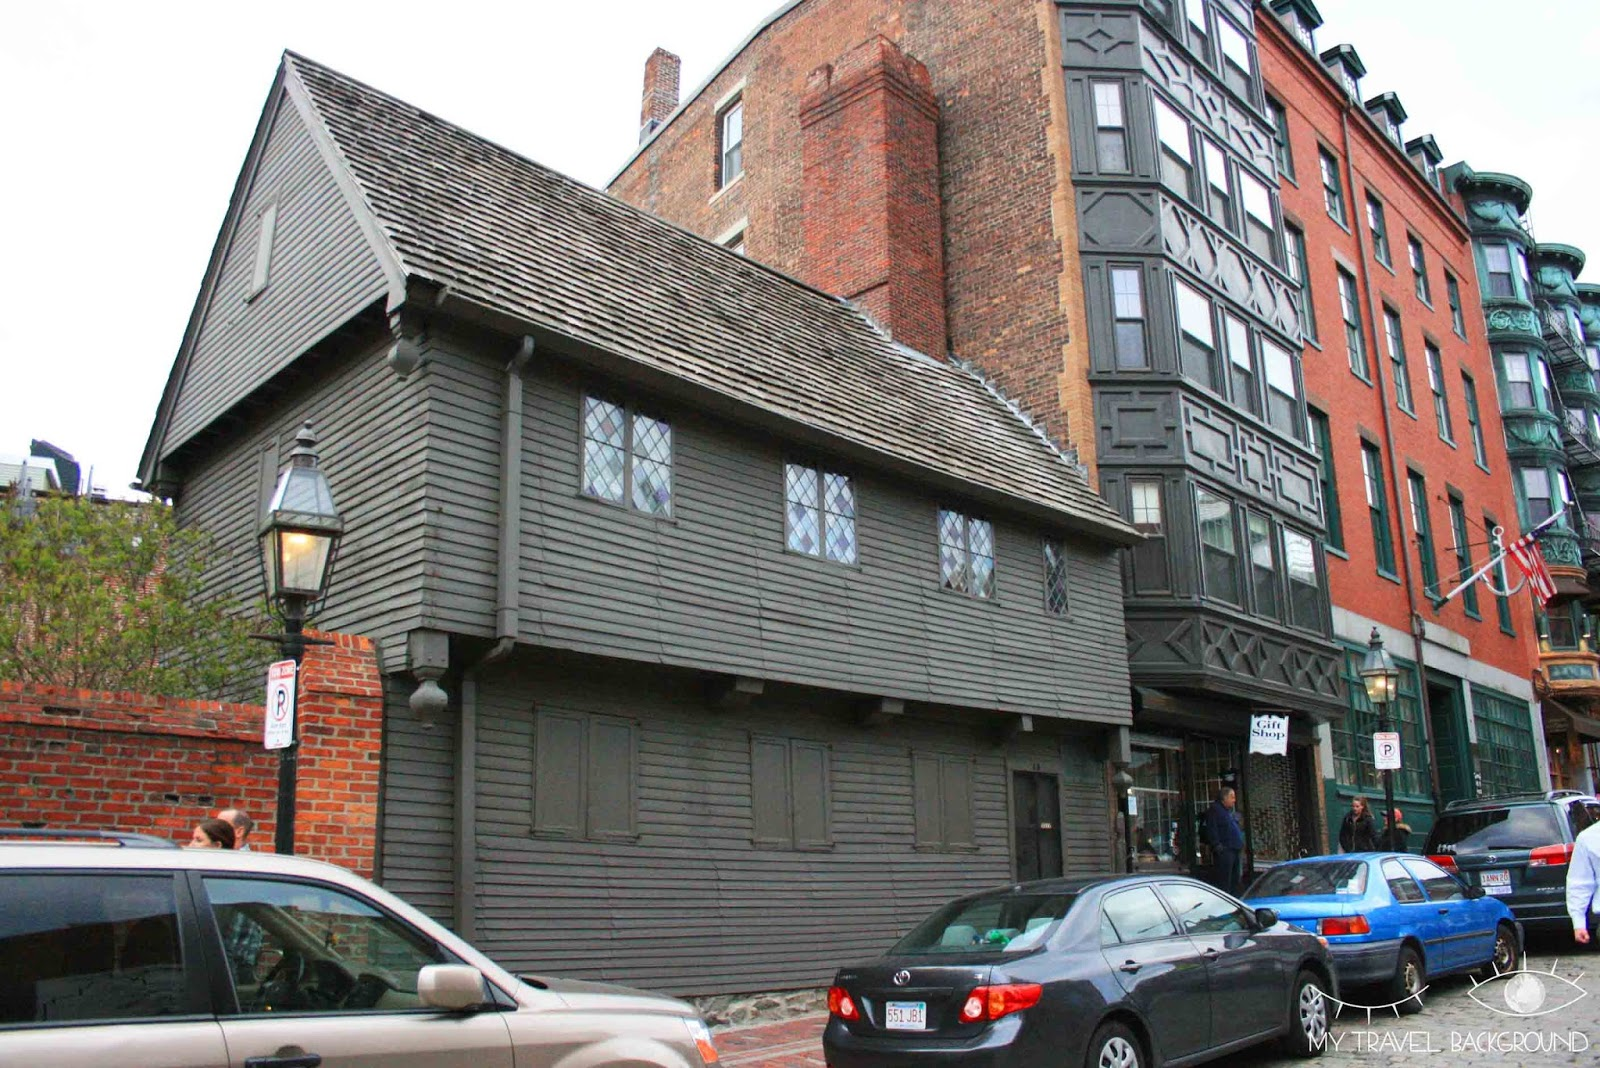 My Travel Background : la maison de Paul Revere